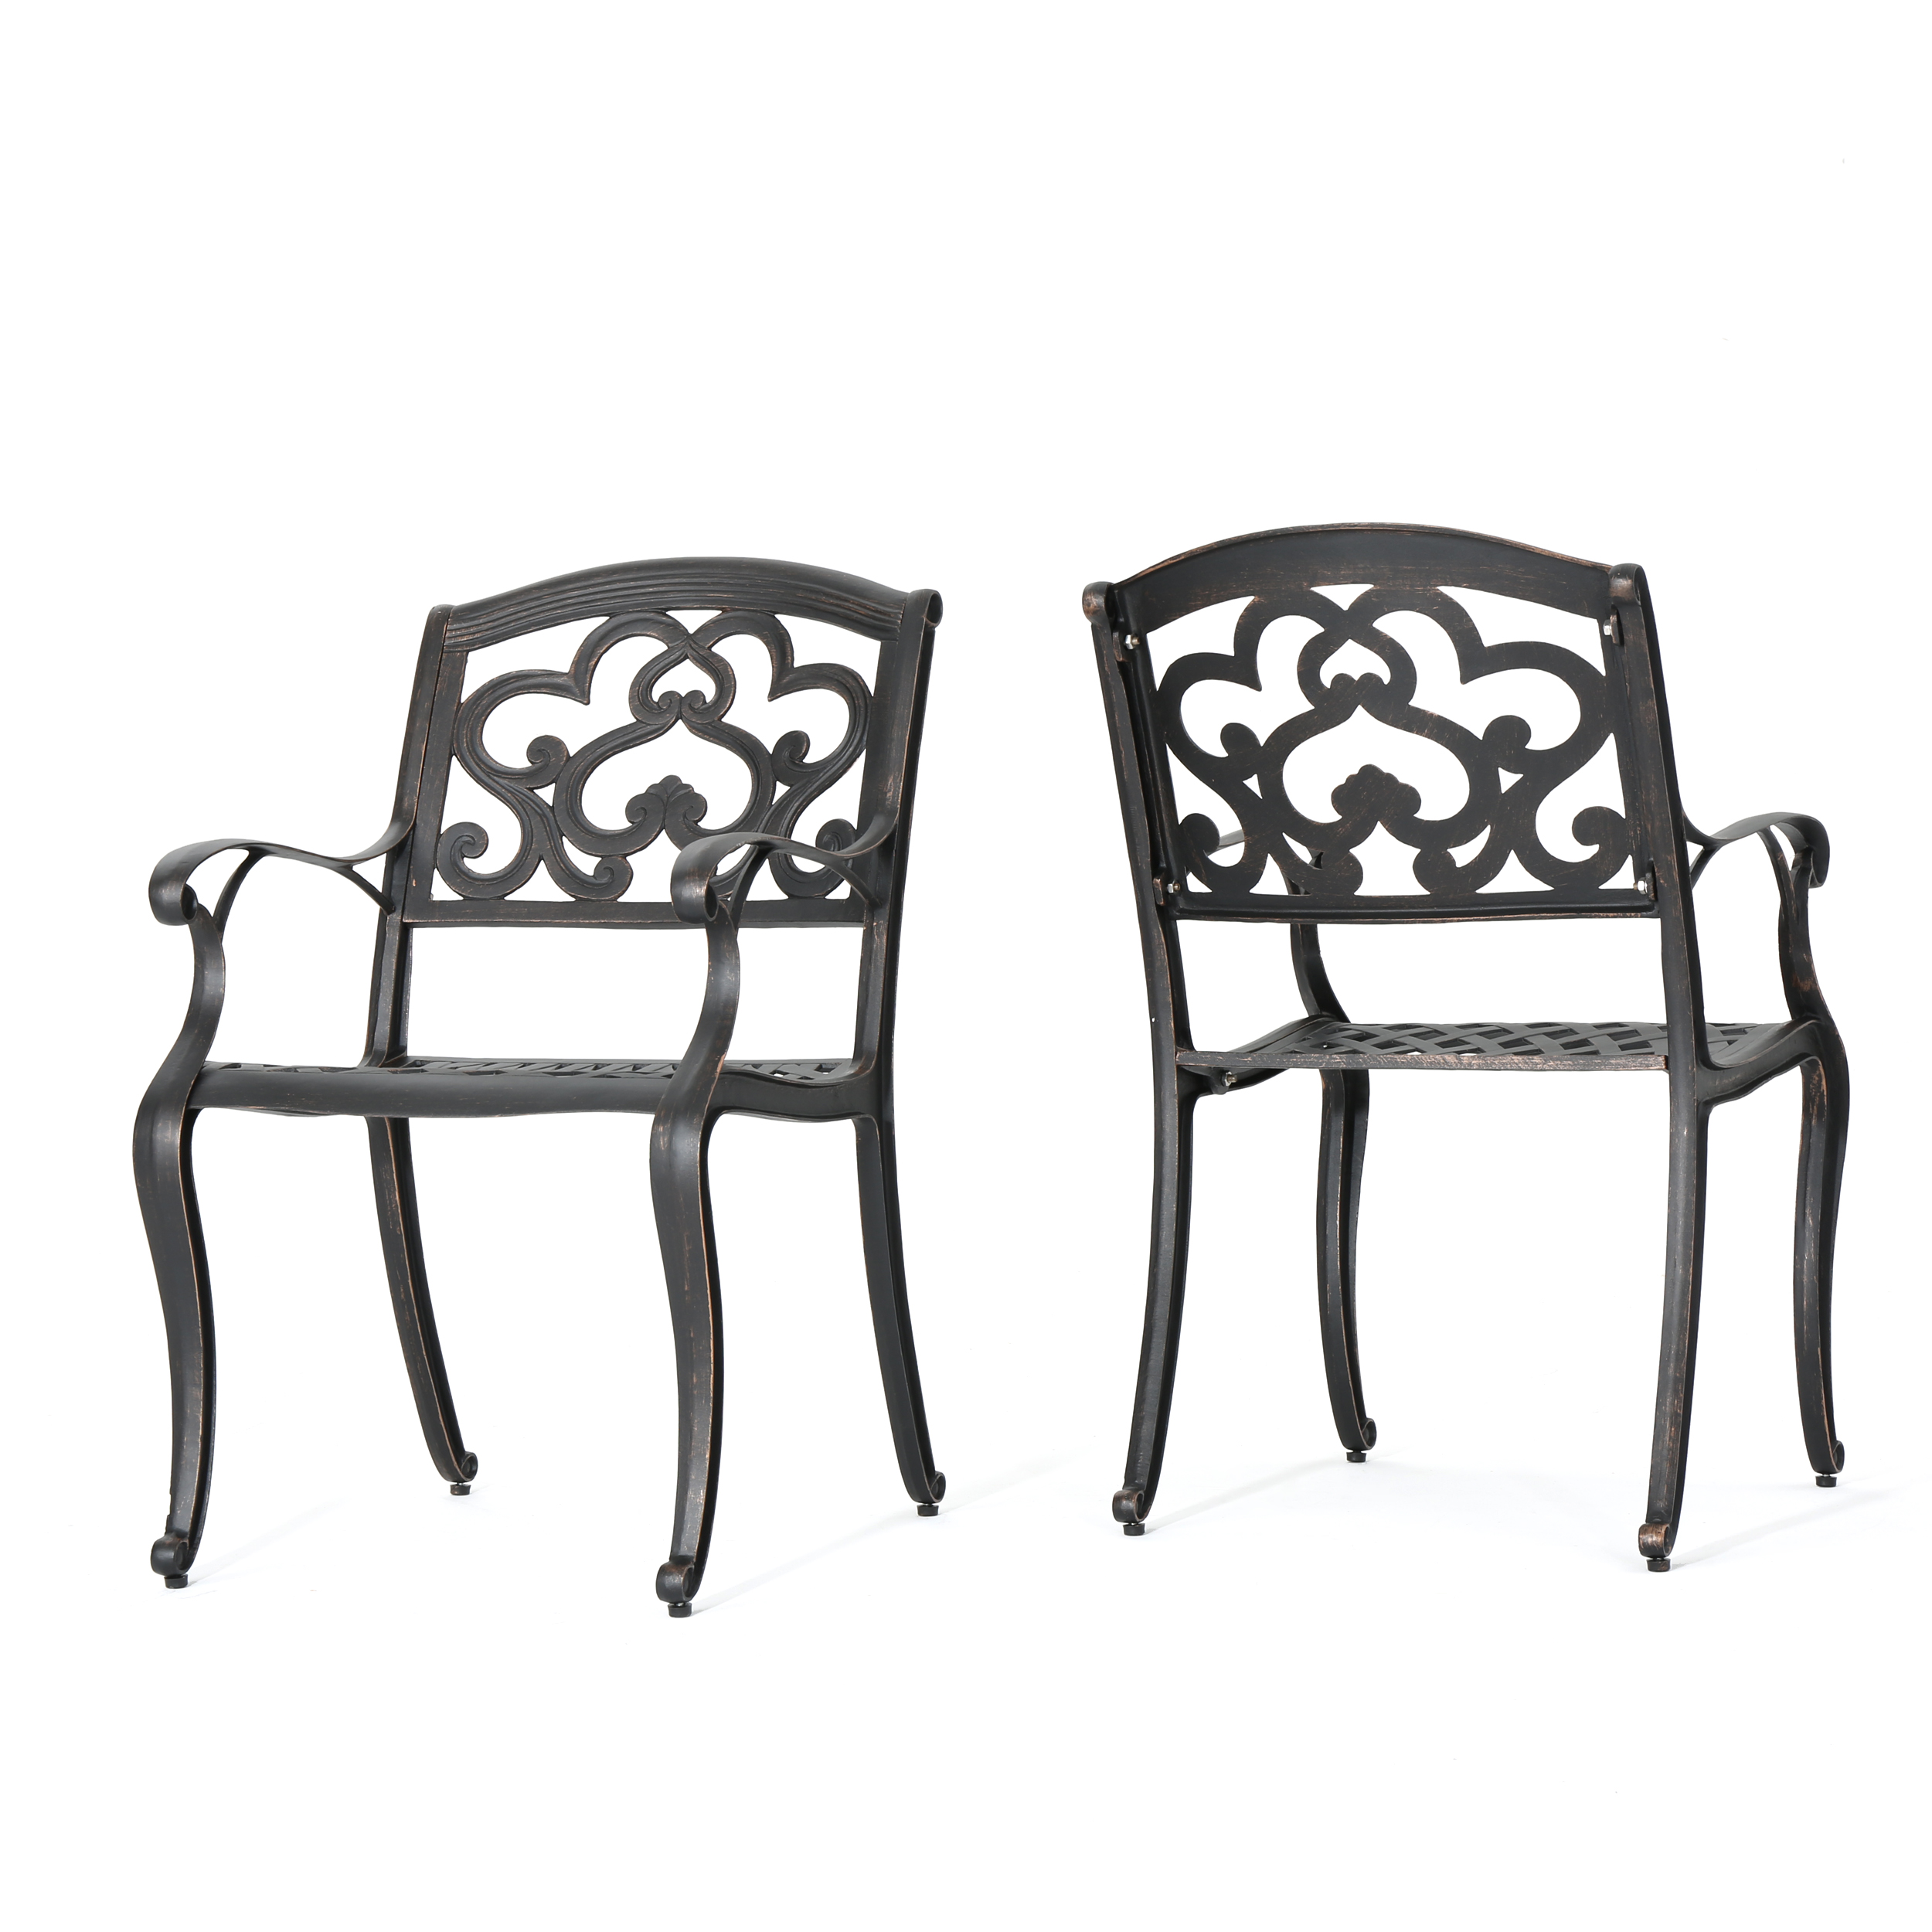 Augusta Outdoor Cast Aluminum Dining Chairs, Set of 2